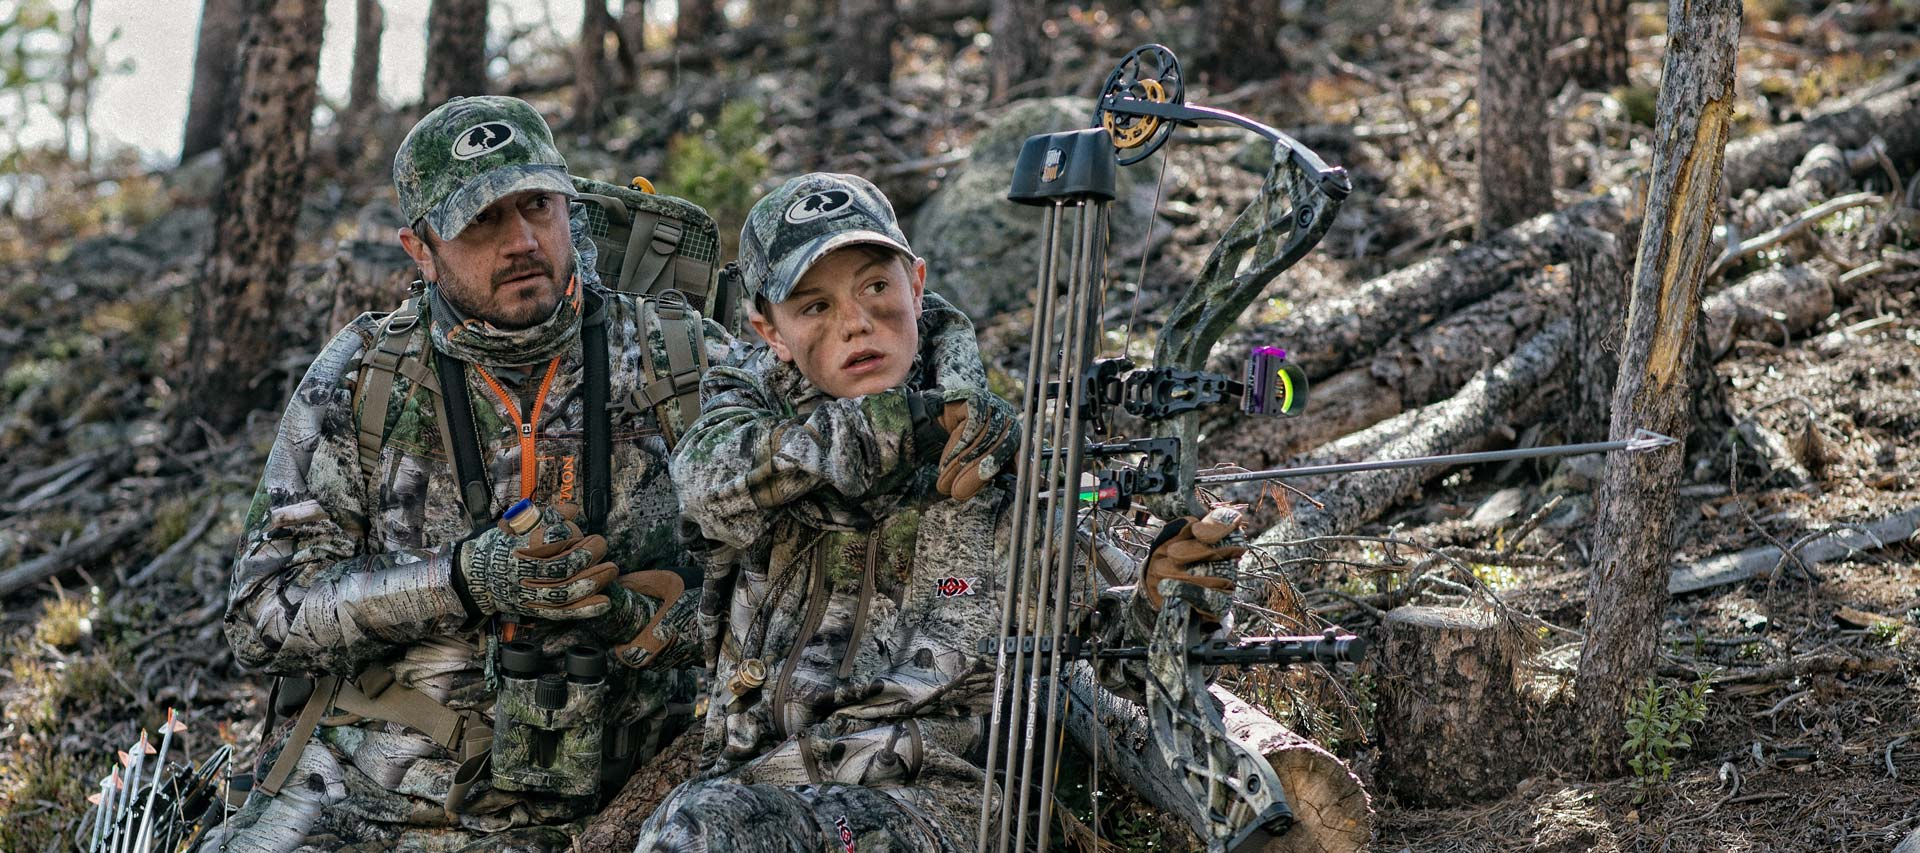 Mossy Oak Mountain Country Lifestyle Photos